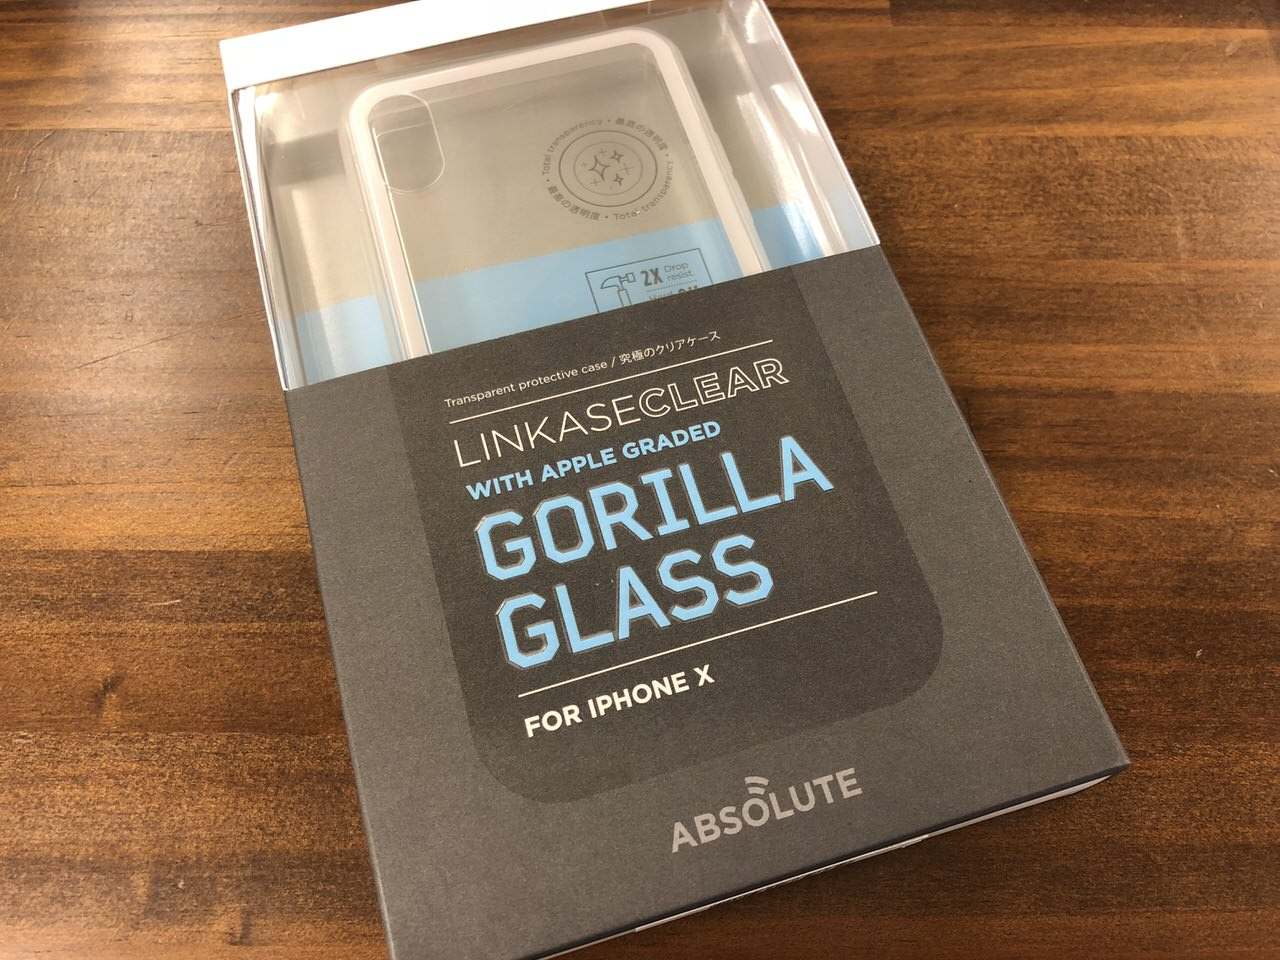 Gorilla glass review odge 1467